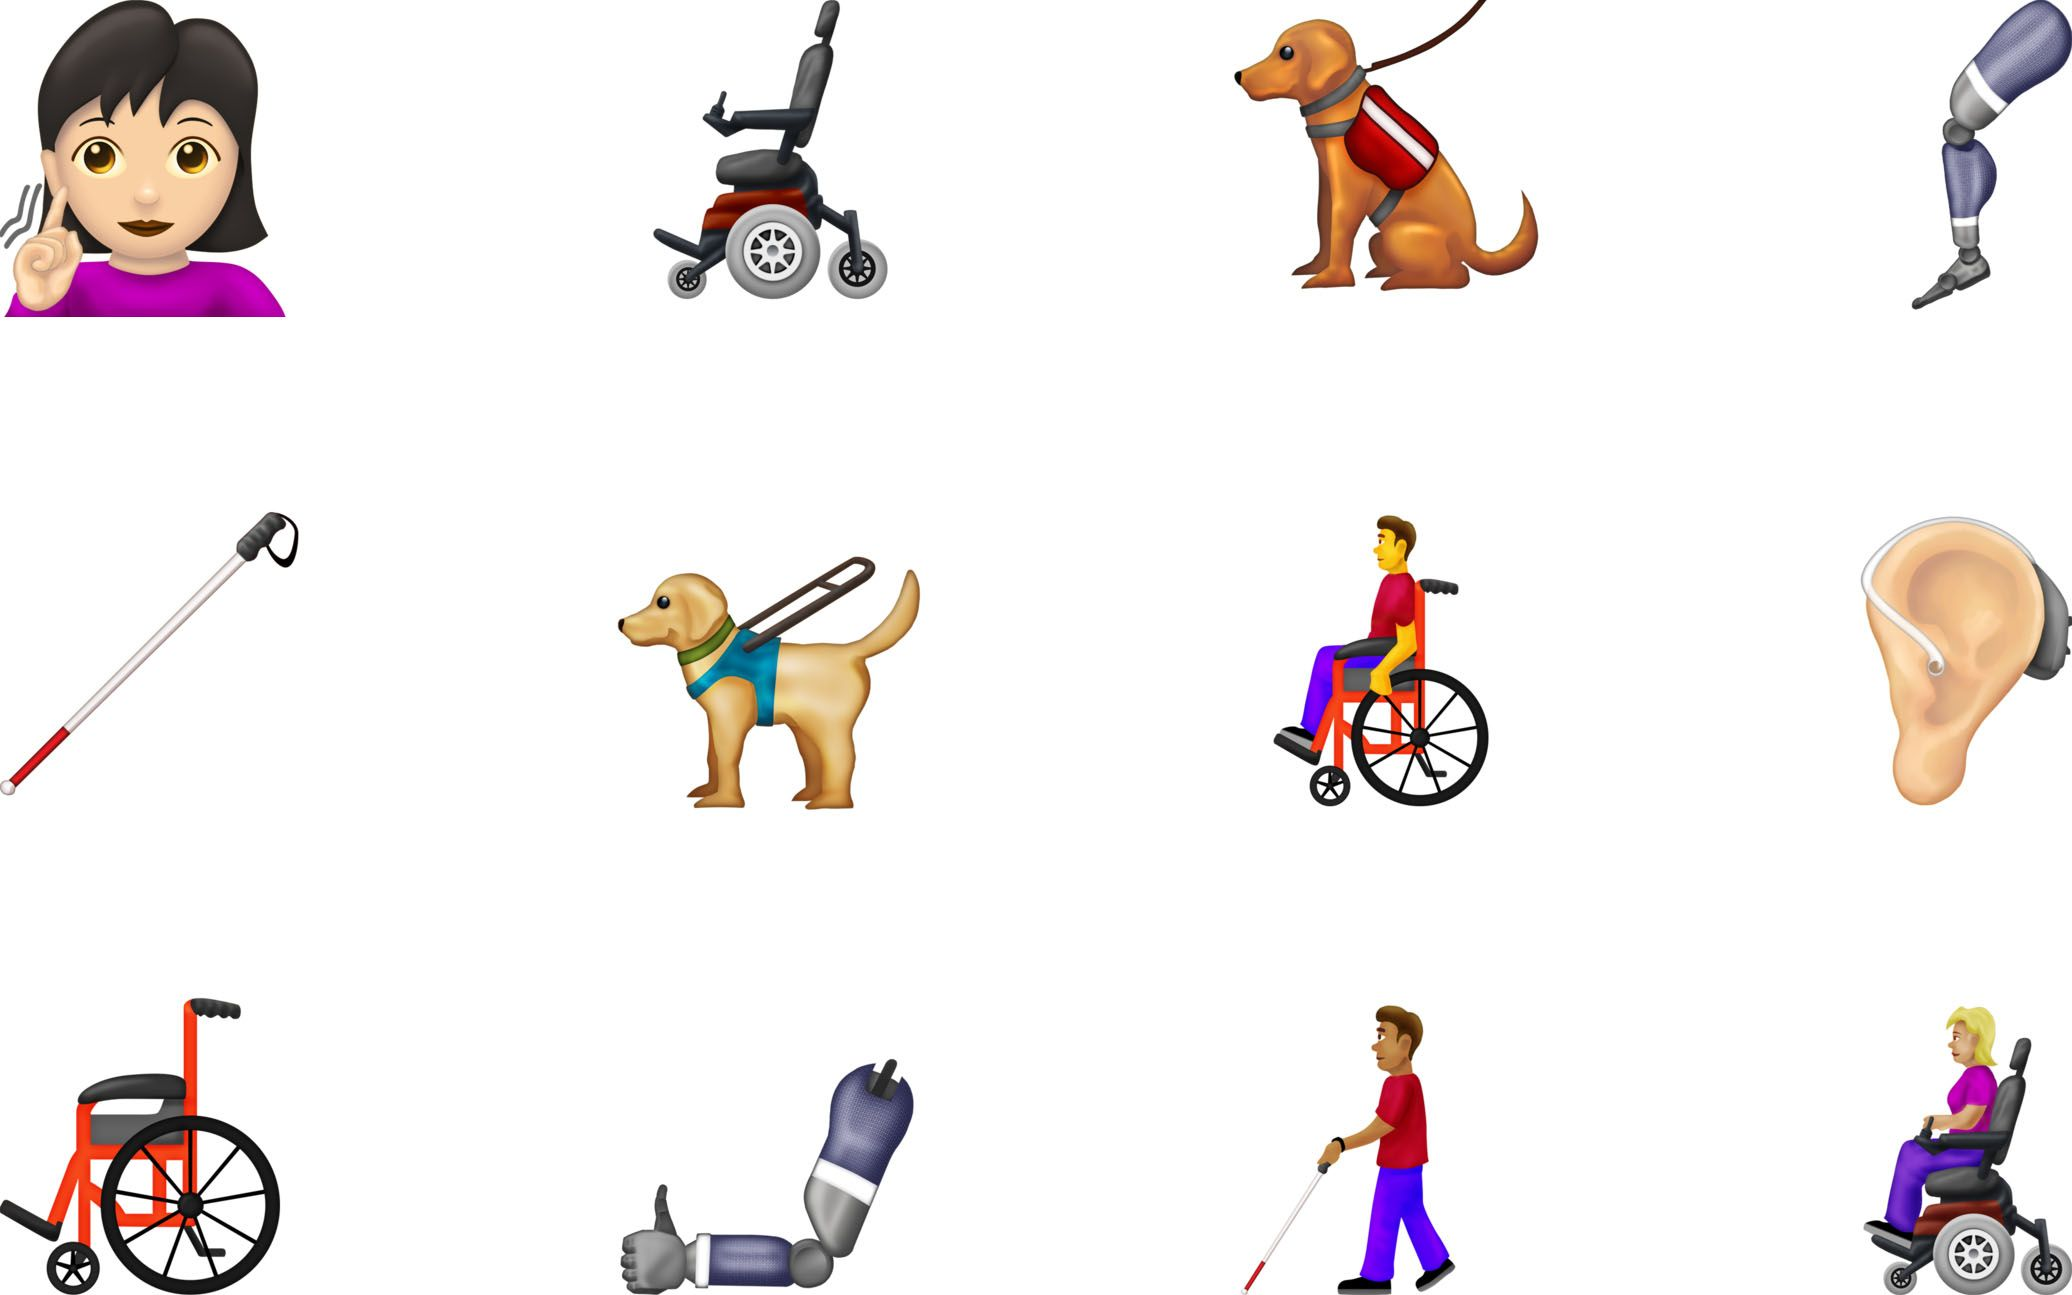 New Emoji Include People With Disabilities